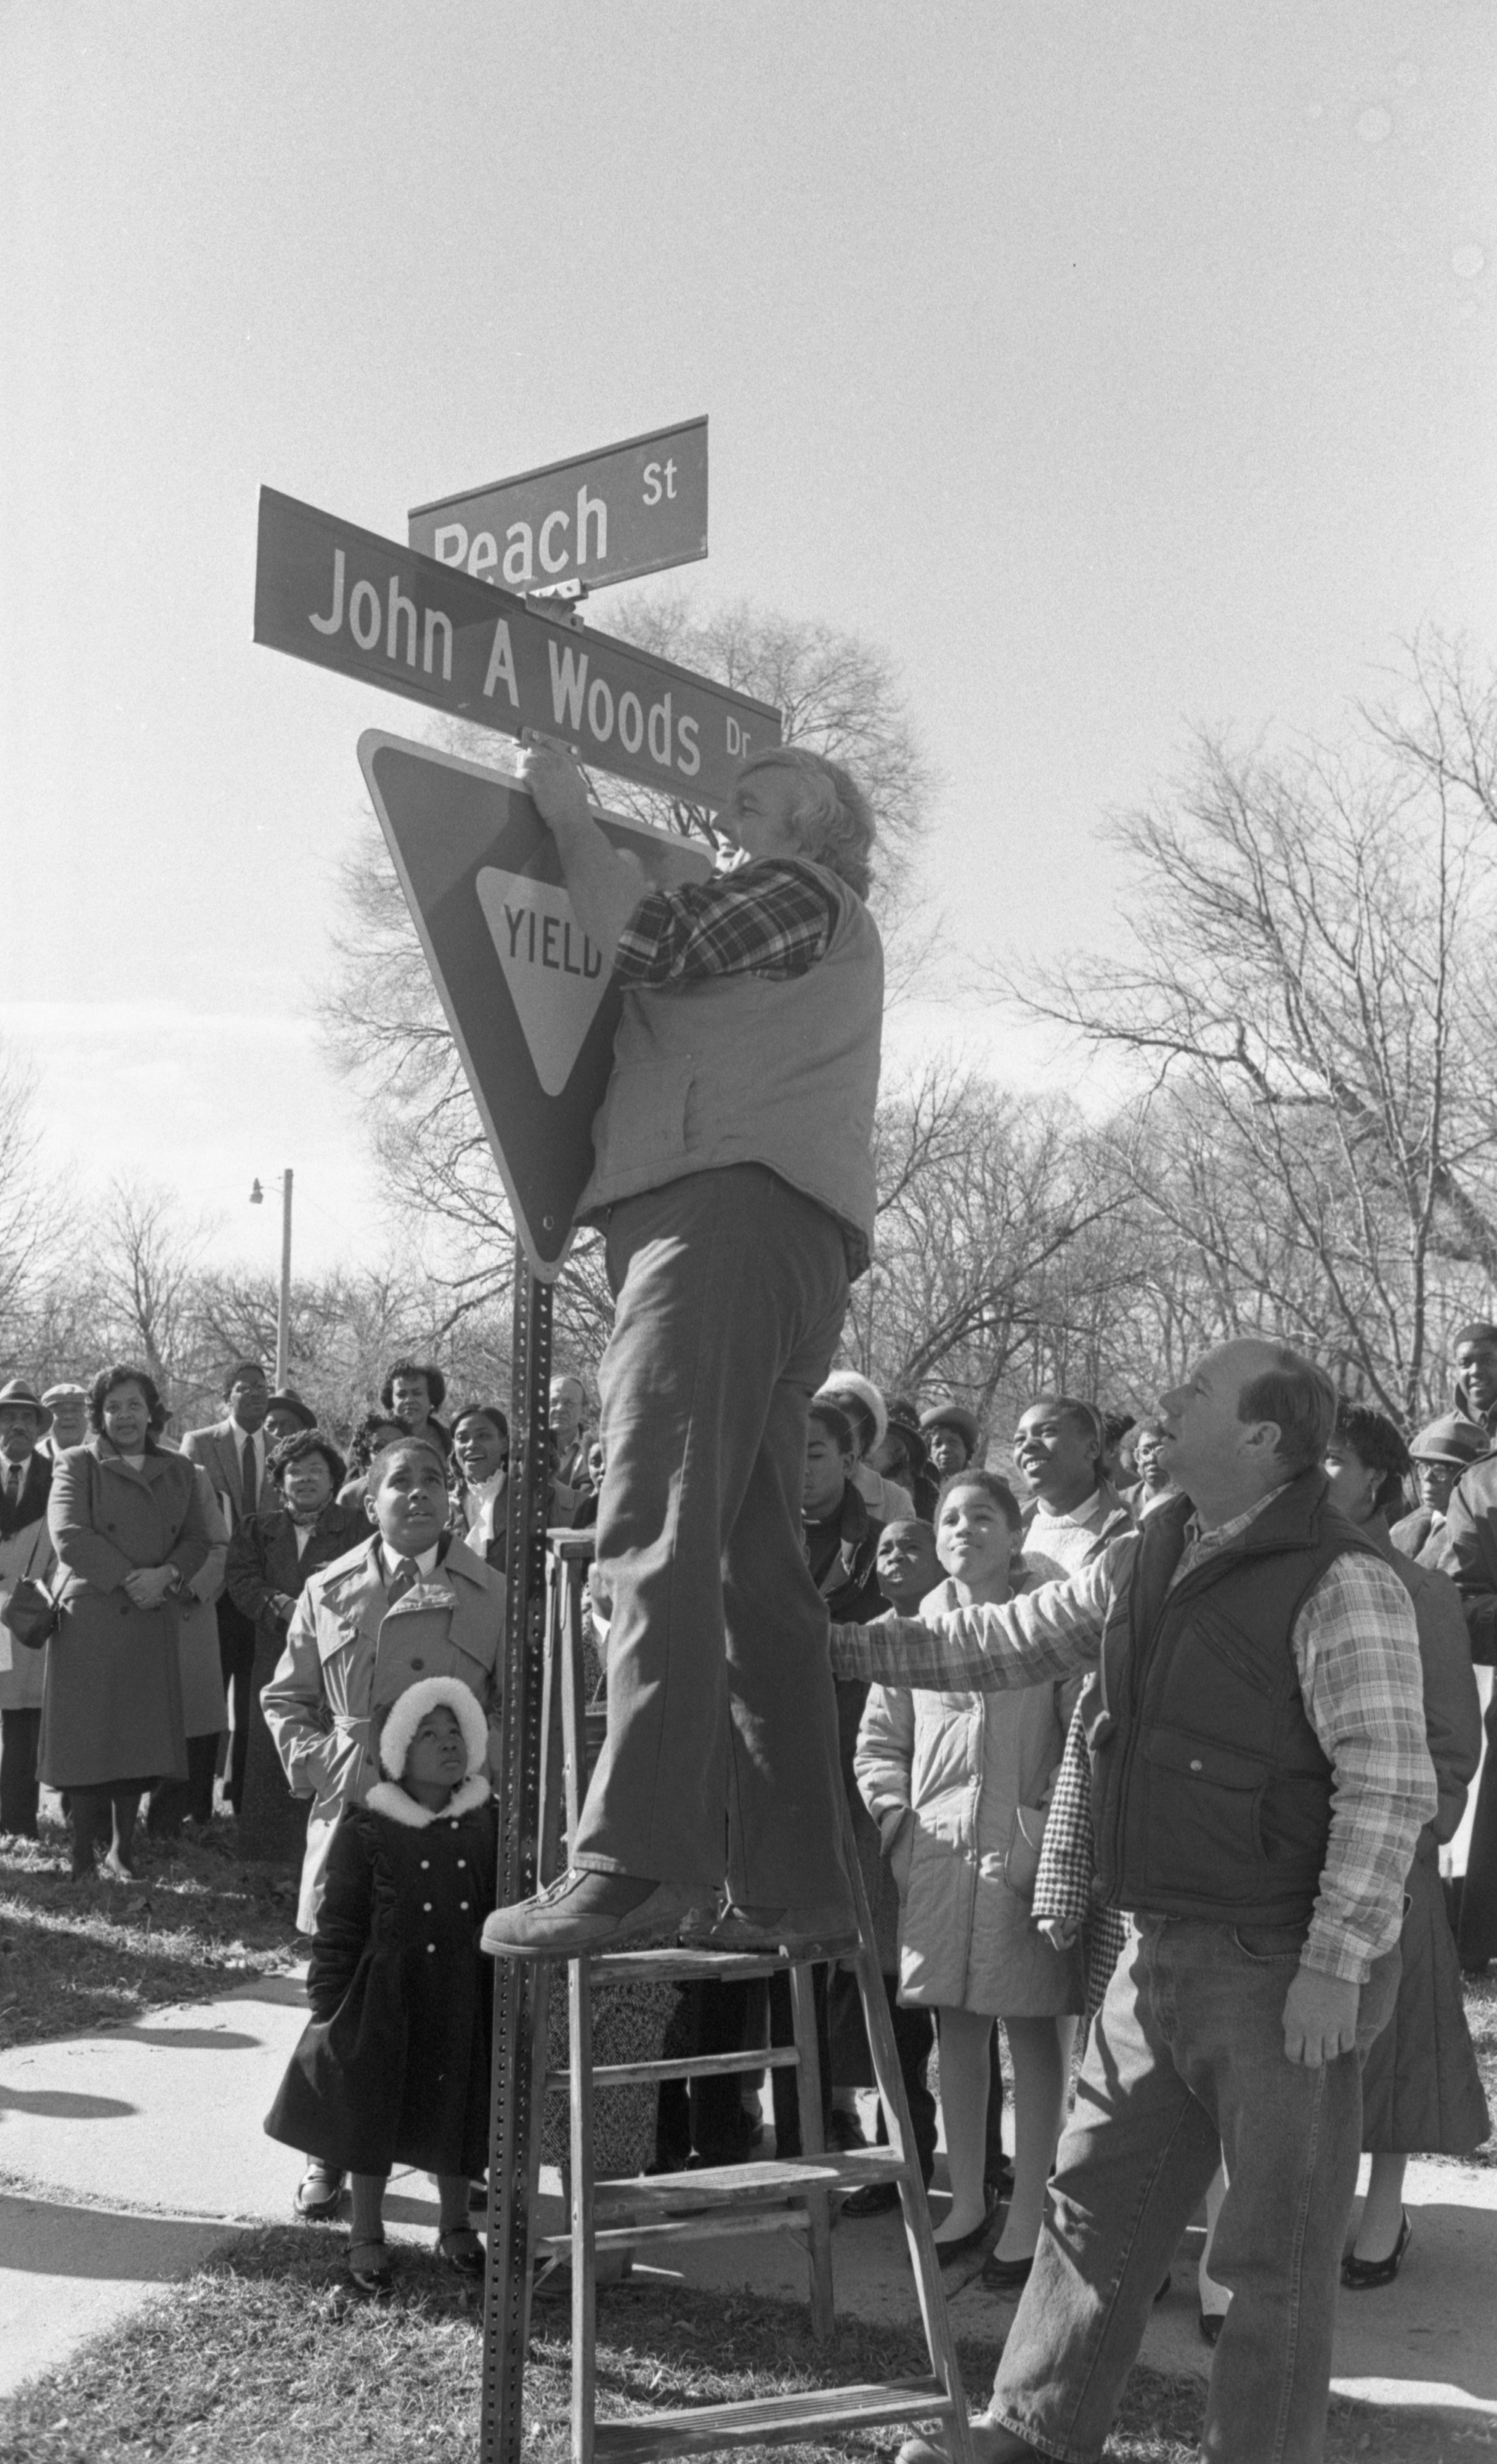 Plum Street Renamed In Ceremony To Honor Rev. John A. Woods, February 1990 image